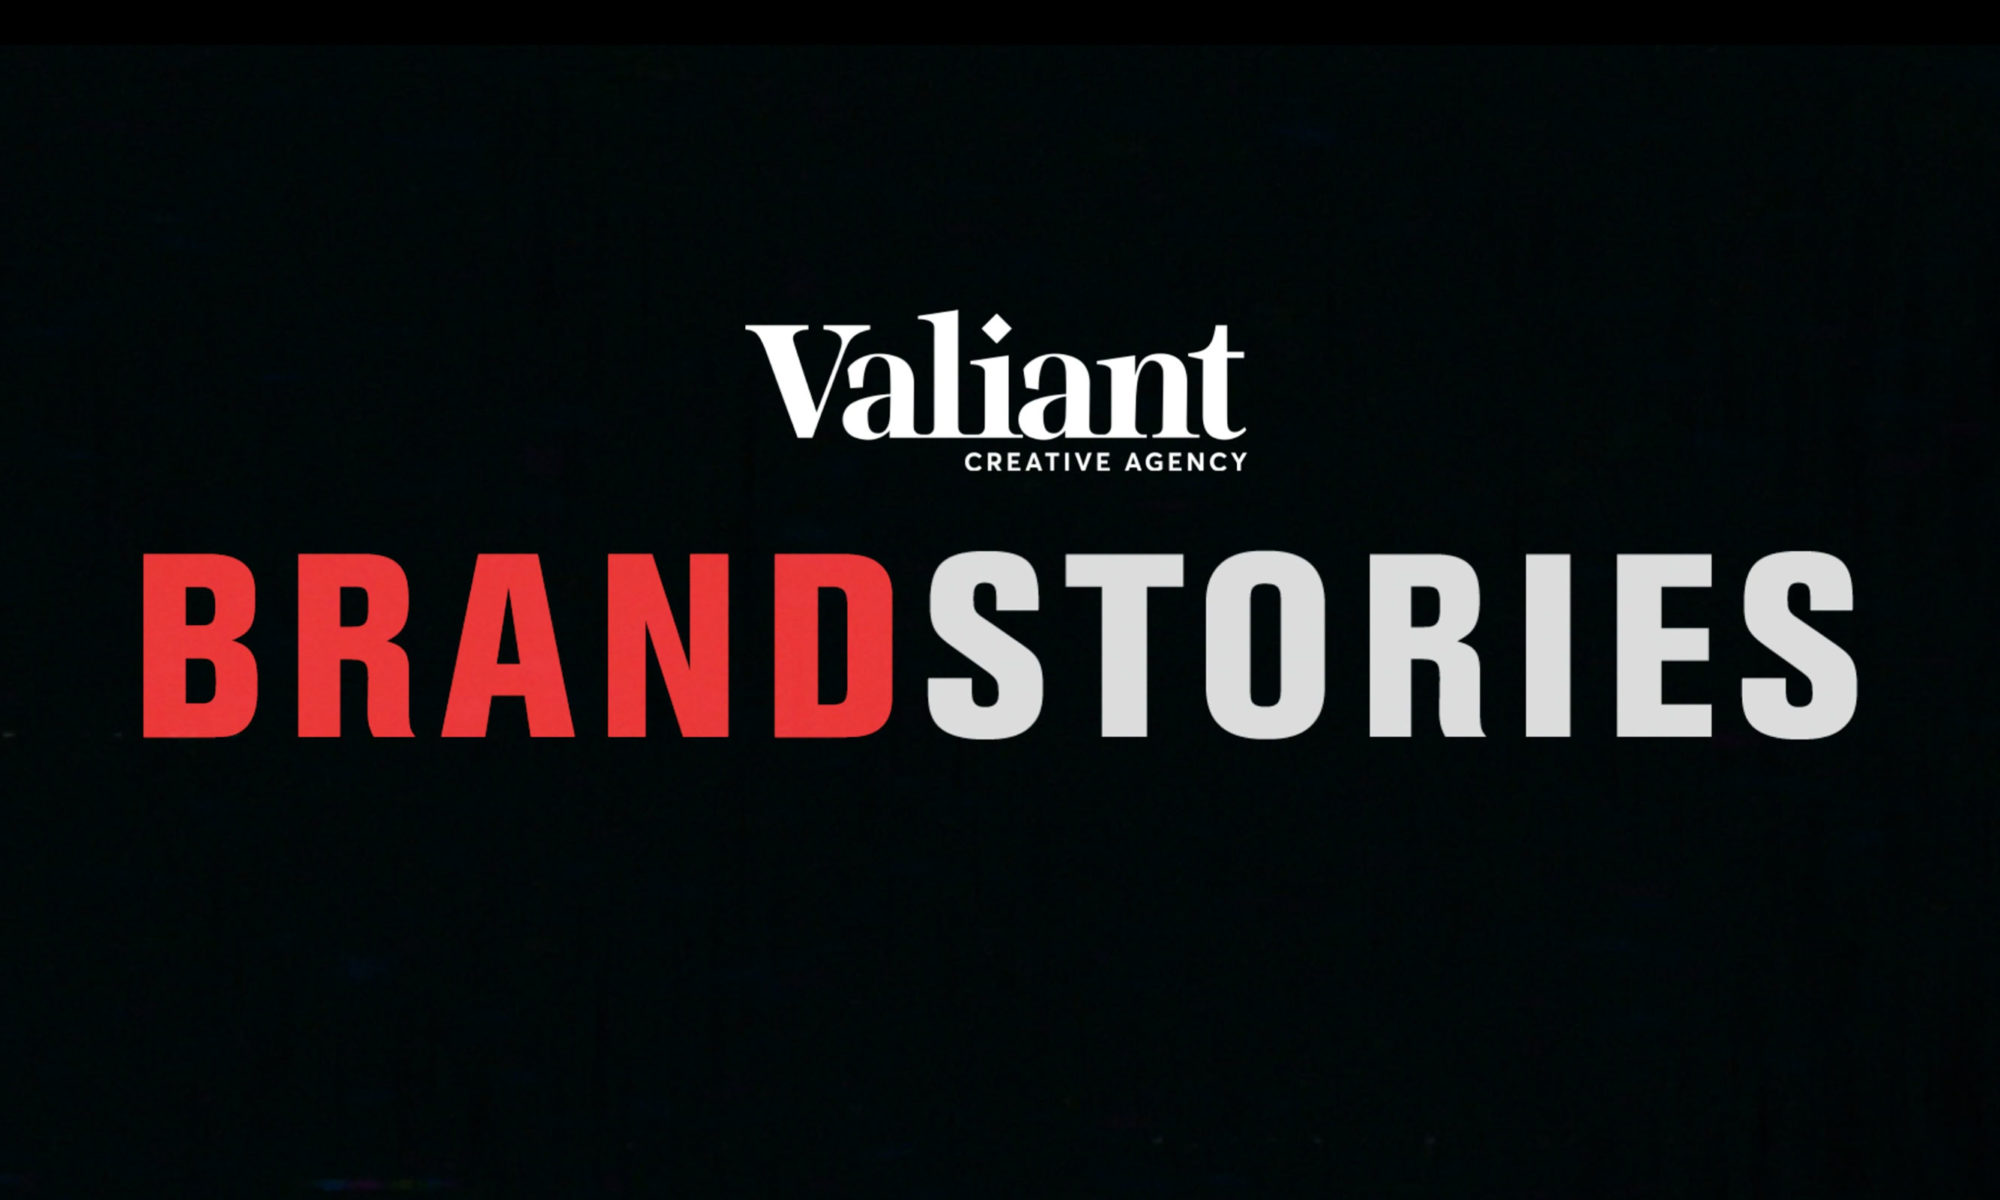 Brand Stories by Valiant Creative Agency